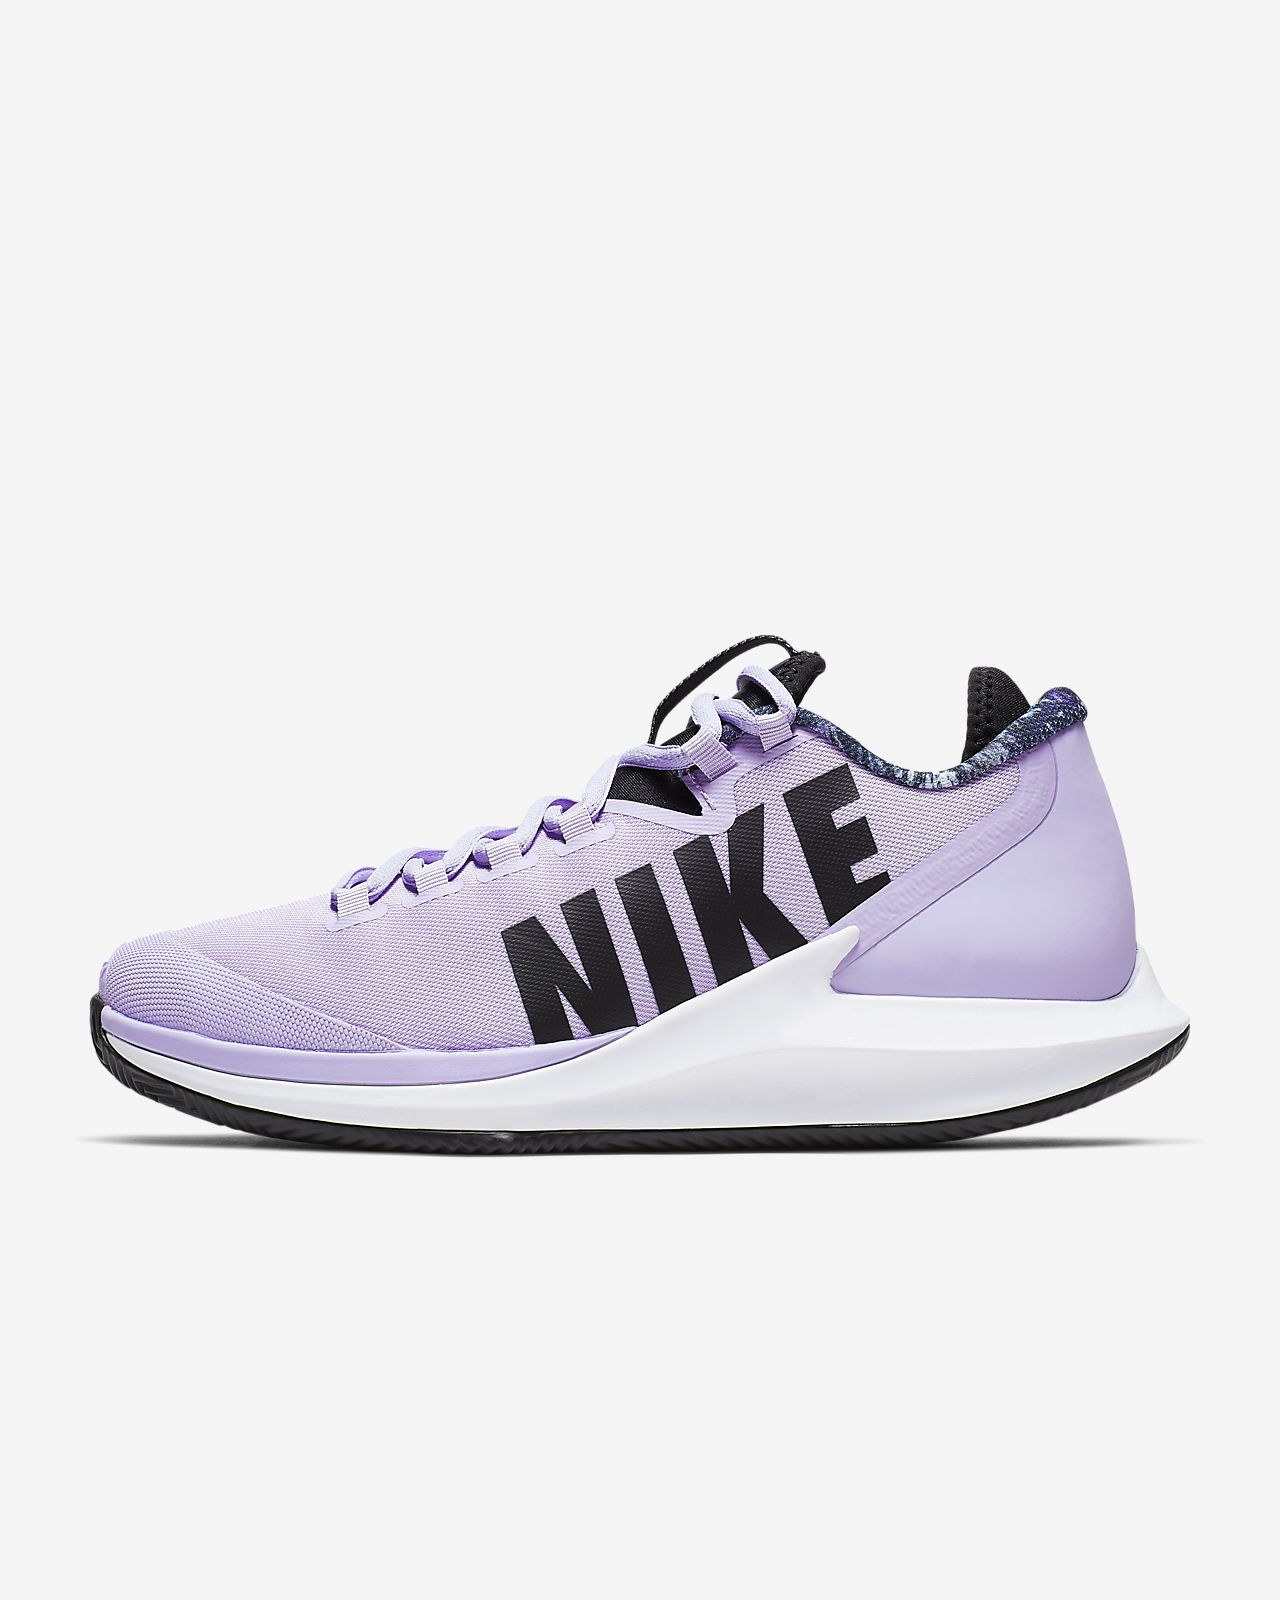 NikeCourt Air Zoom Zero Women's Clay Tennis Shoe